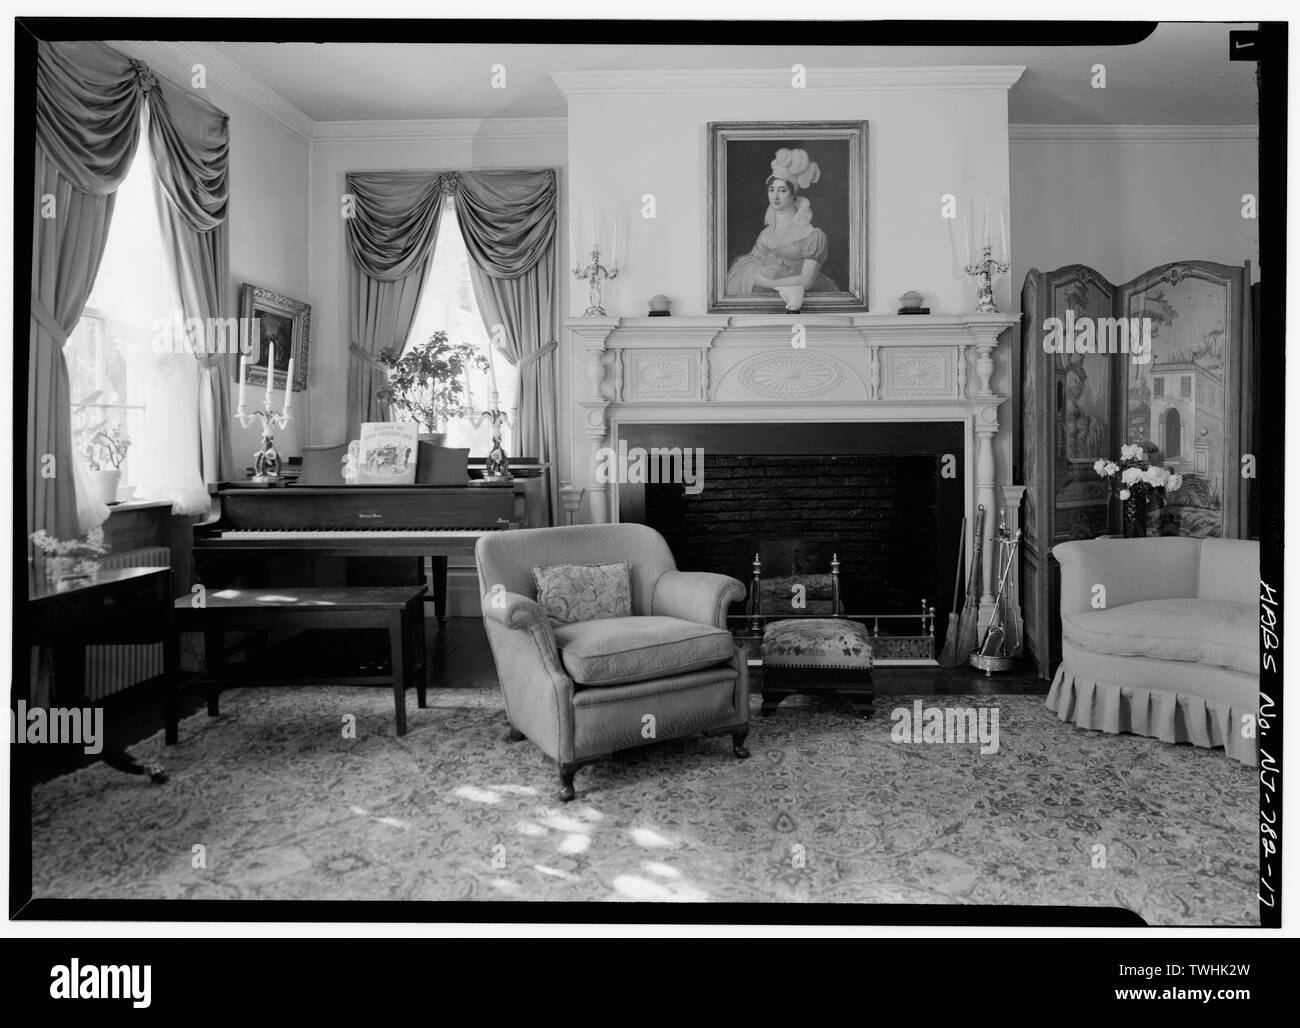 SECOND FLOOR, SITTINGROOM, VIEW OF FIREPLACE AND WINDOWS, SHOWING PROJECTING FIREPLACE, MANTELPIECE - Henry Miller House, Main Street, Oldwick, Hunterdon County, NJ - Stock Image